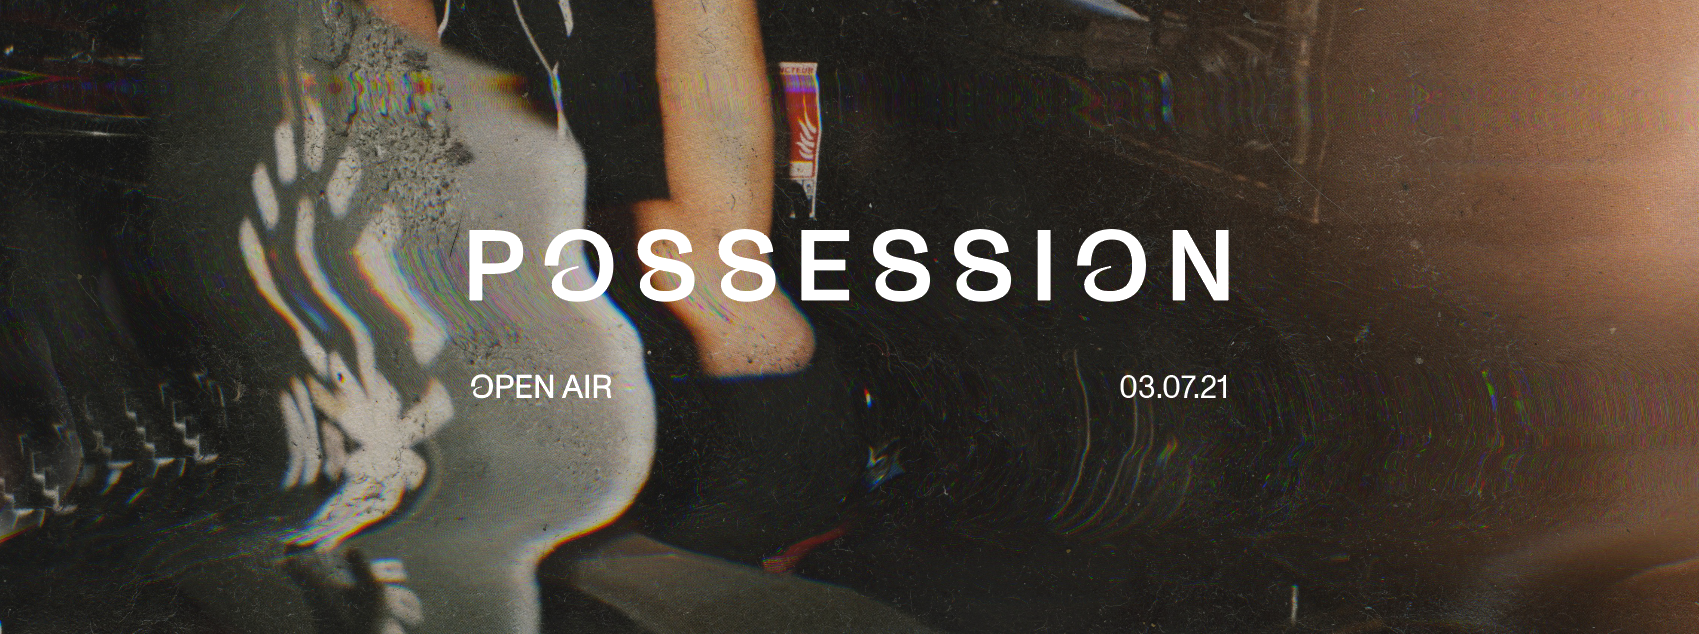 Possession - Open Air